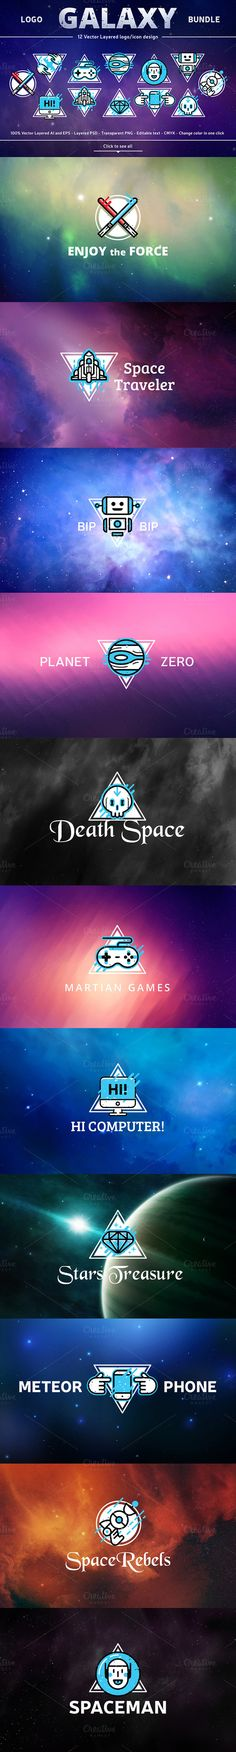 Logo Galaxy Bundle by Manudesign on Creative Market